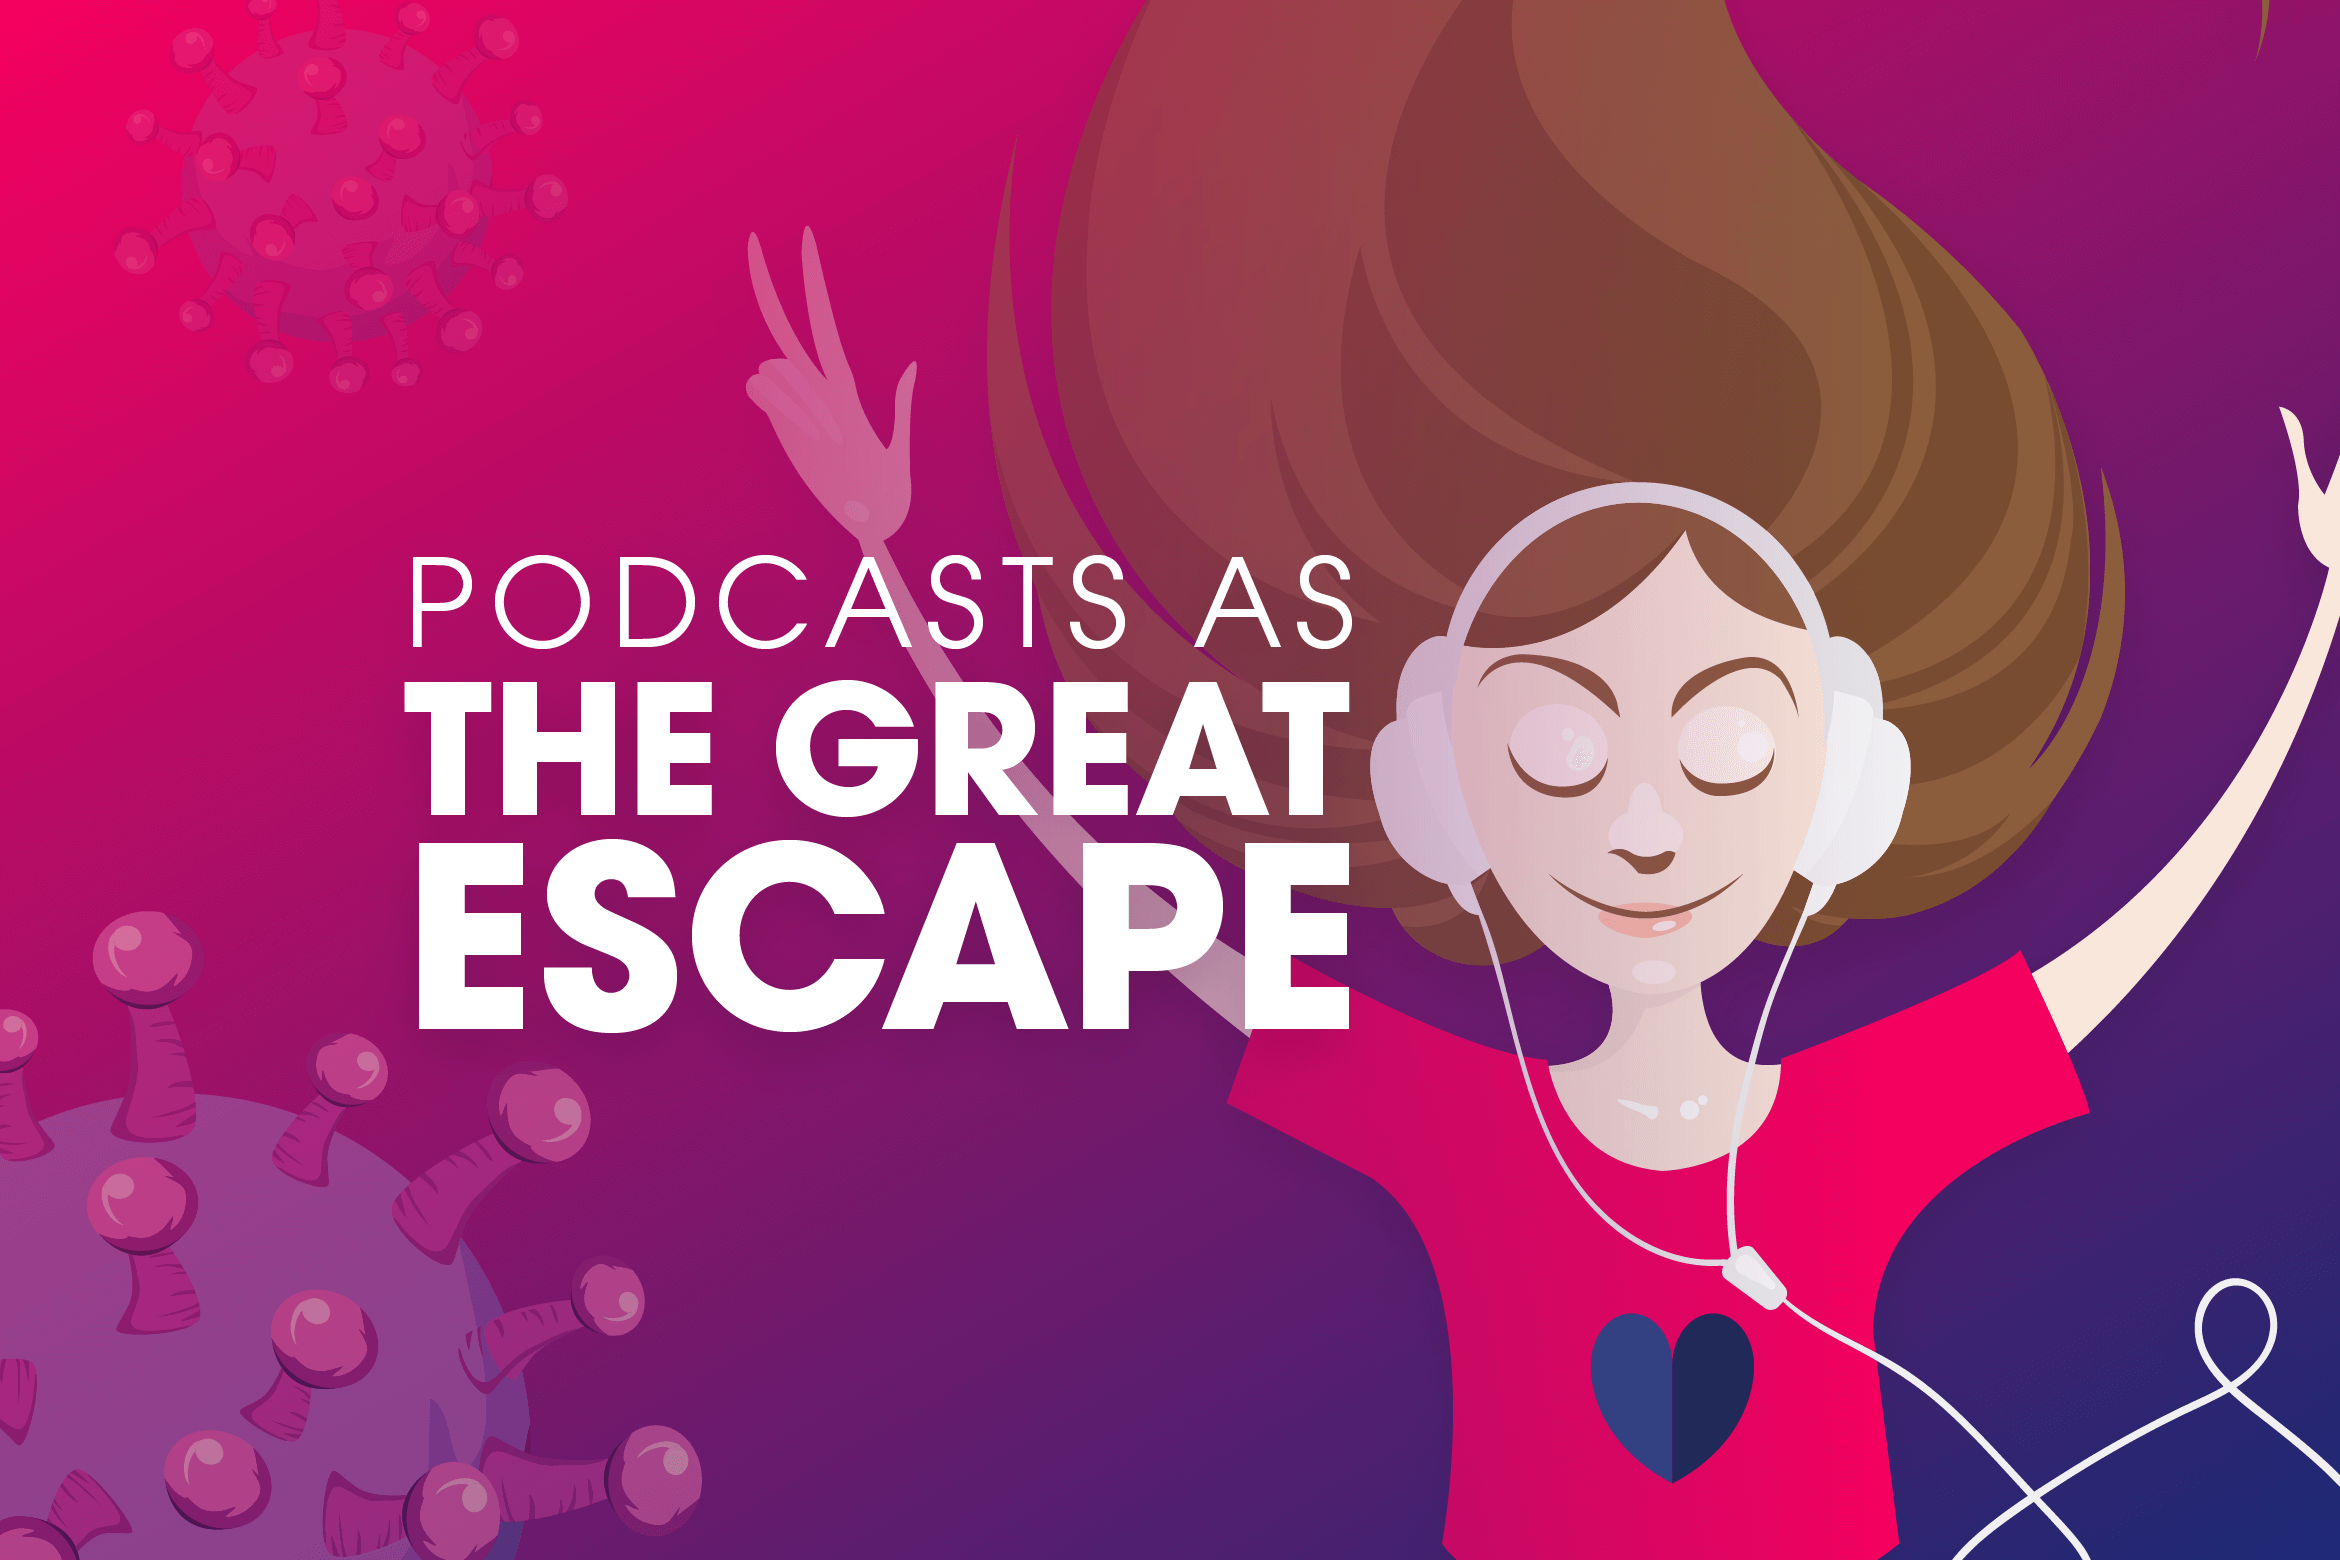 Podcasts Offer a Unique Escape from COVID-19 Anxiety